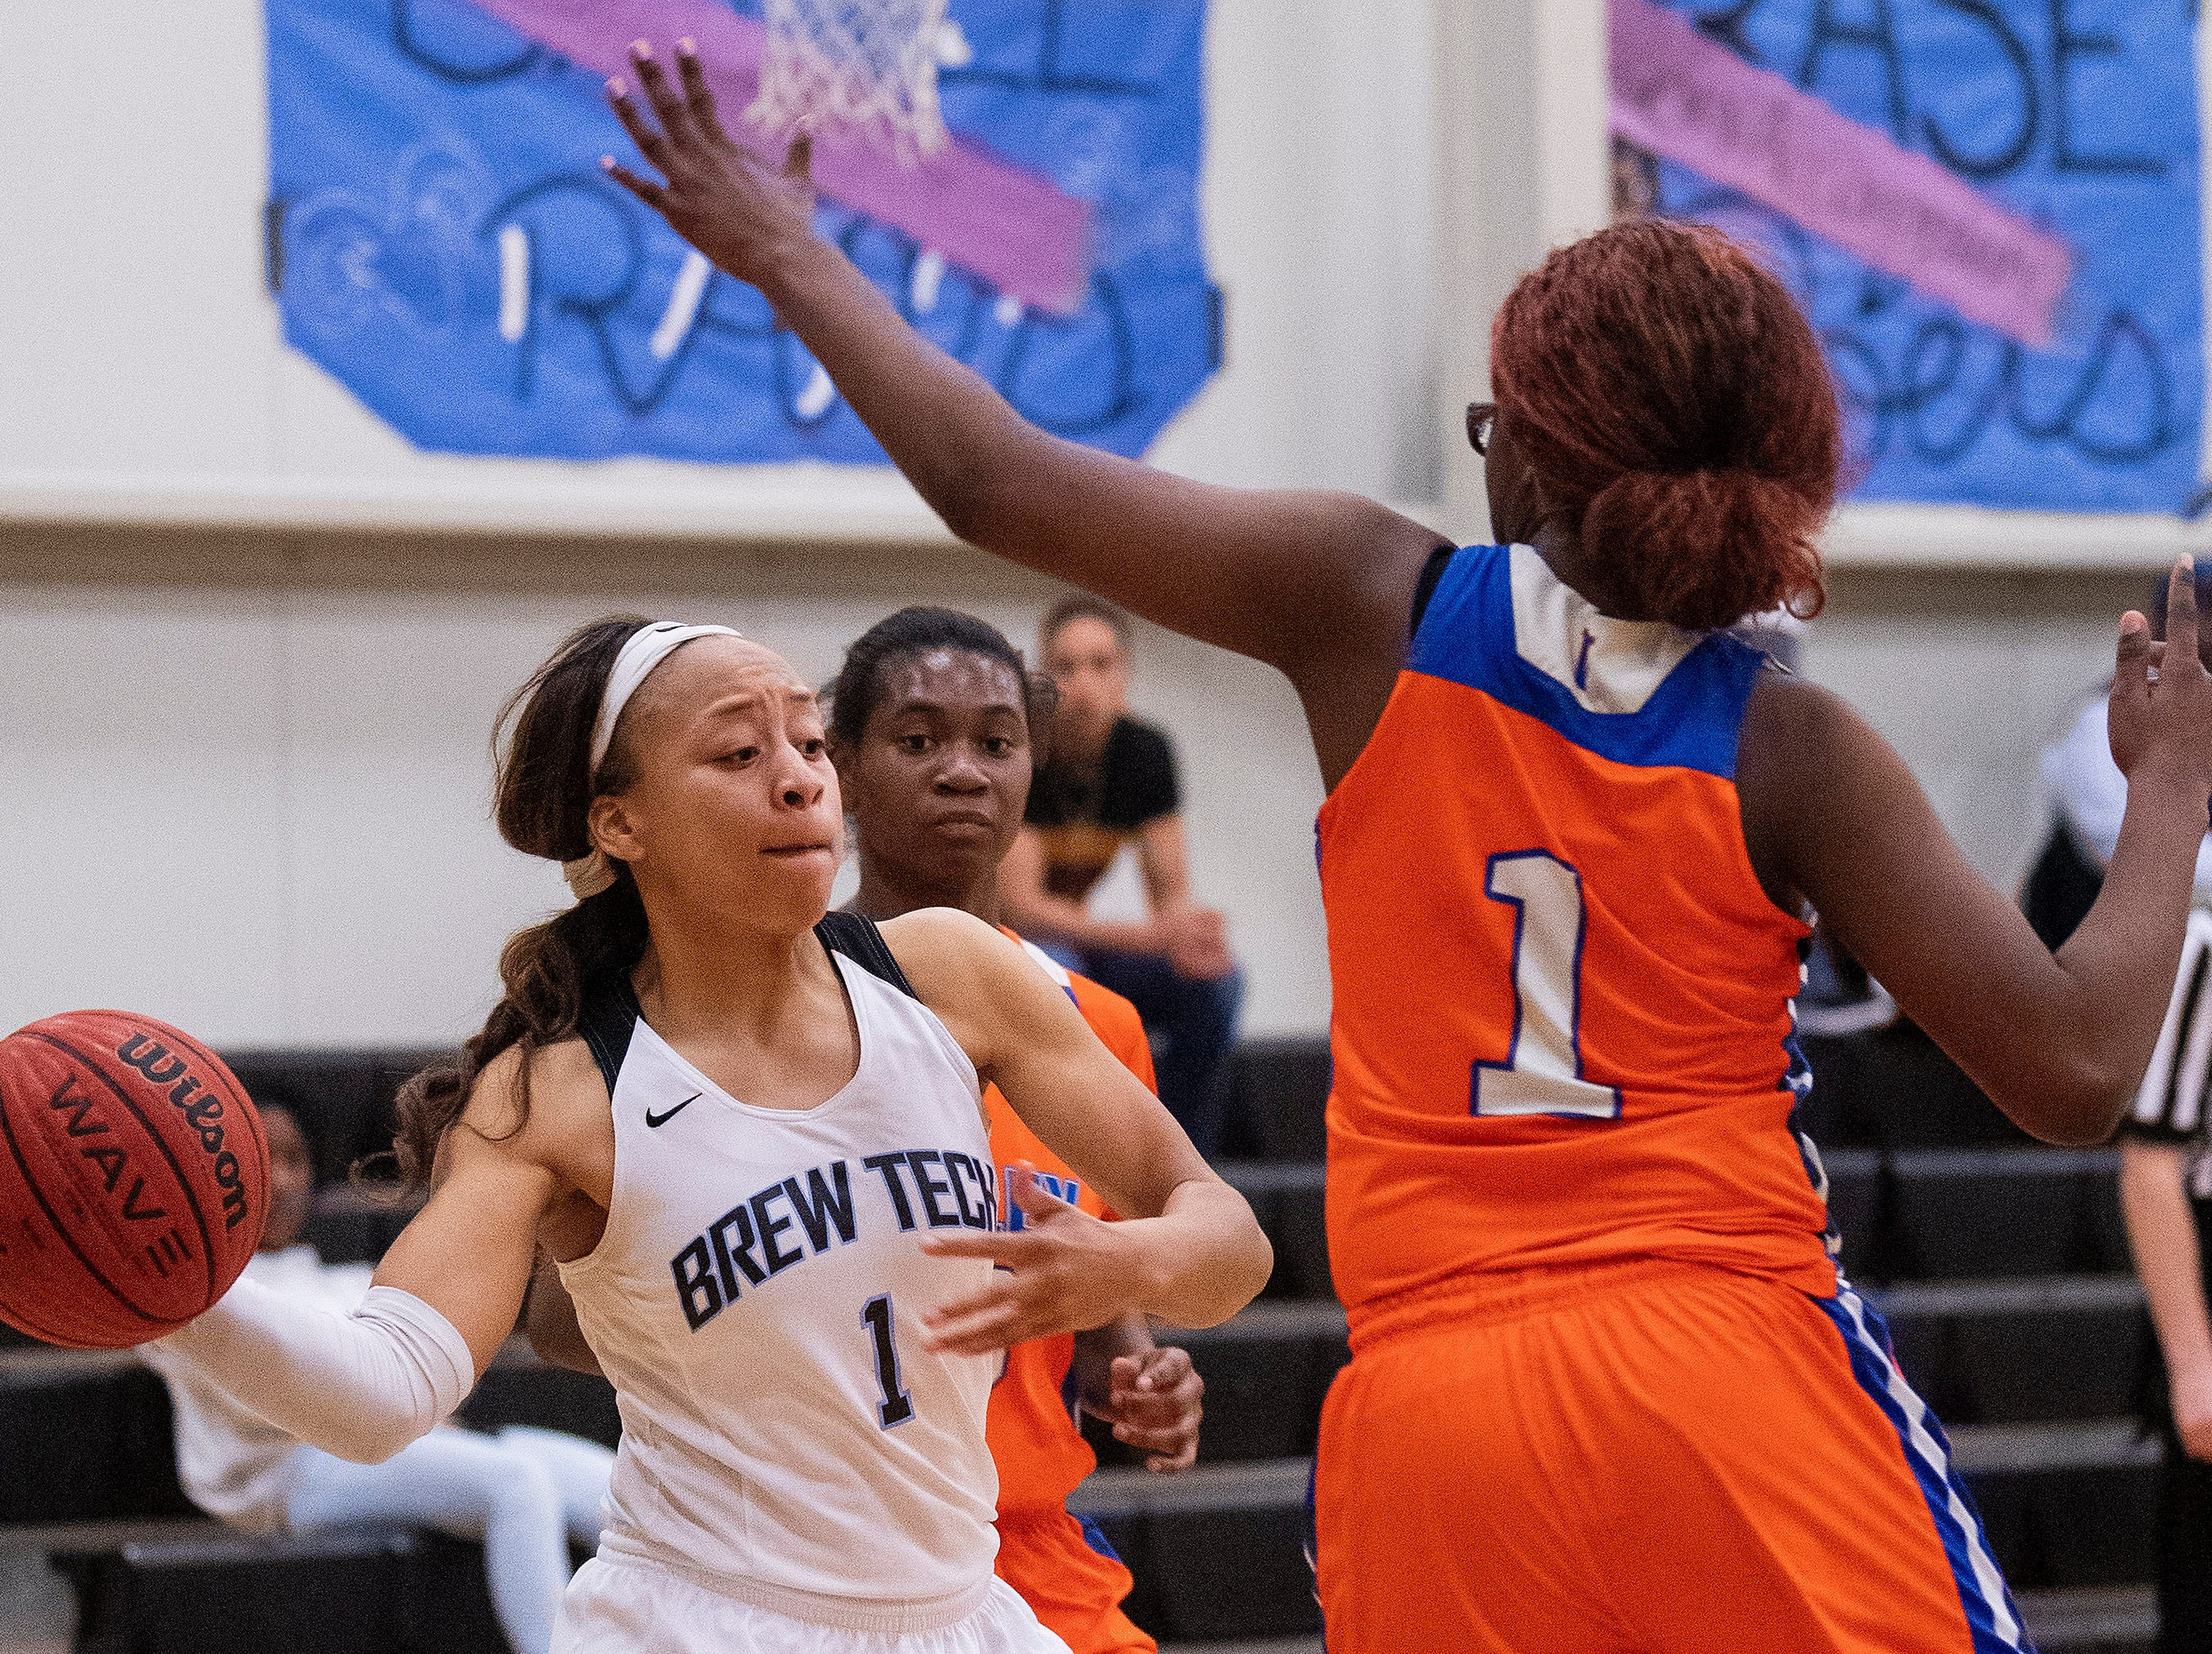 Brewbaker Tech's Taylor Sharpe (1) passes against Valley's Starbresha Core (1) at the BrewTech campus in Montgomery, Ala., on Thursday February 7, 2019.